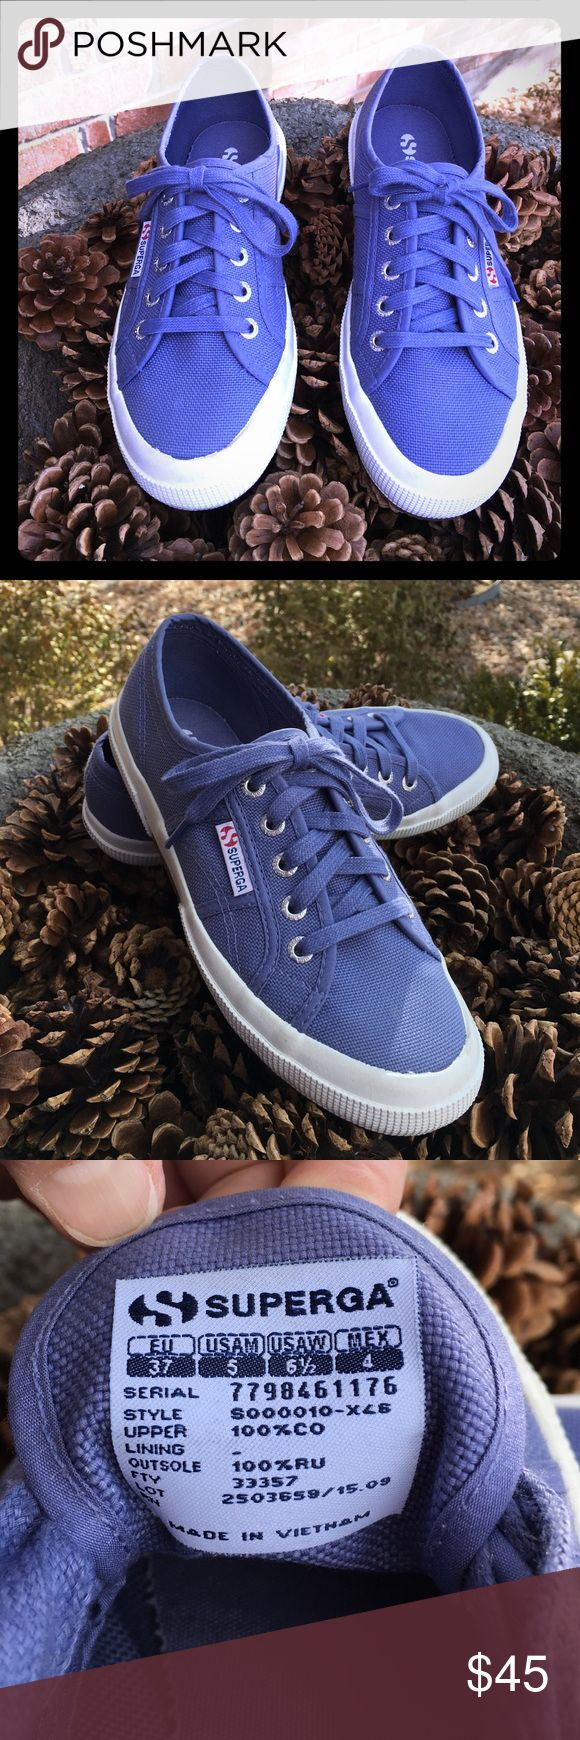 Superga Periwinkle Sneakers EUC Superga sneakers. Canvas material, size US women's 7. Superga Shoes Sneakers